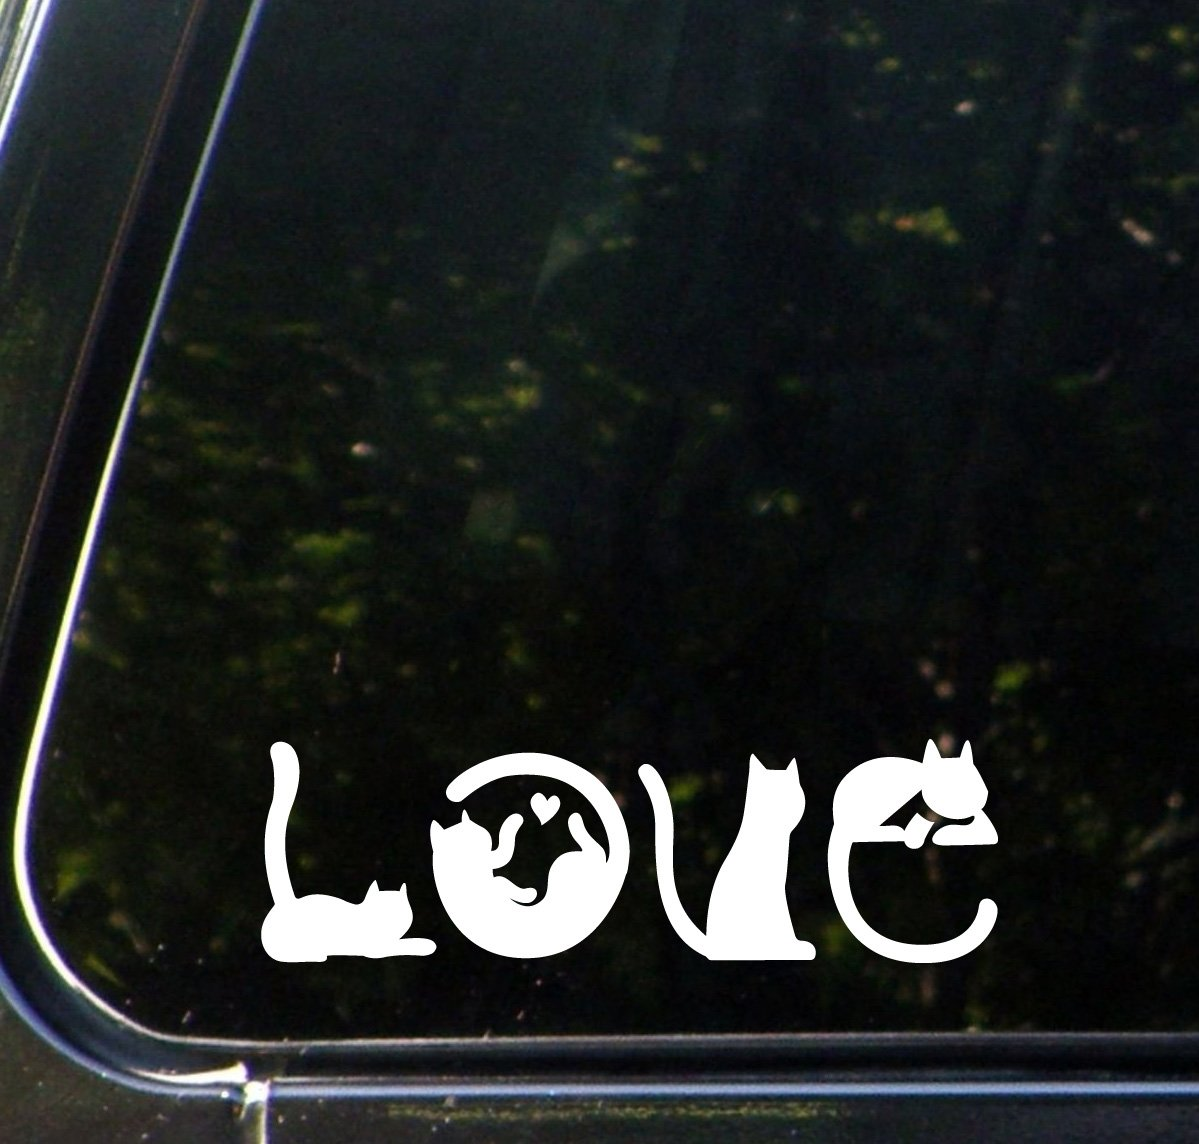 Amazoncom Cats Spell LOVE Car Vinyl Decal Sticker W X H - Custom vinyl decals for carvinyl car use vinyl decals to refresh your cars look